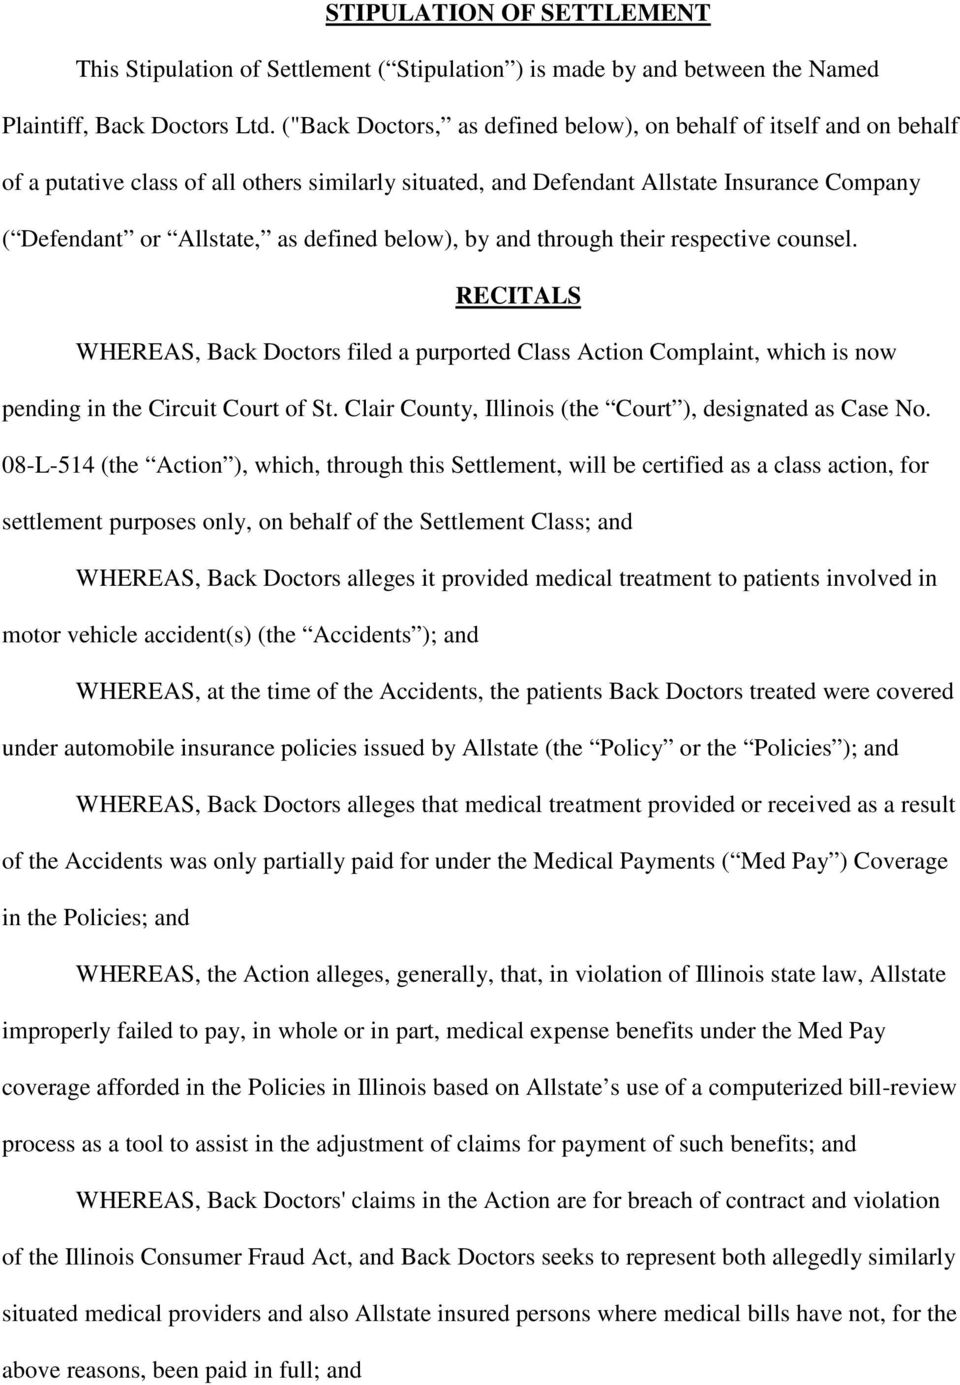 below), by and through their respective counsel. RECITALS WHEREAS, Back Doctors filed a purported Class Action Complaint, which is now pending in the Circuit Court of St.